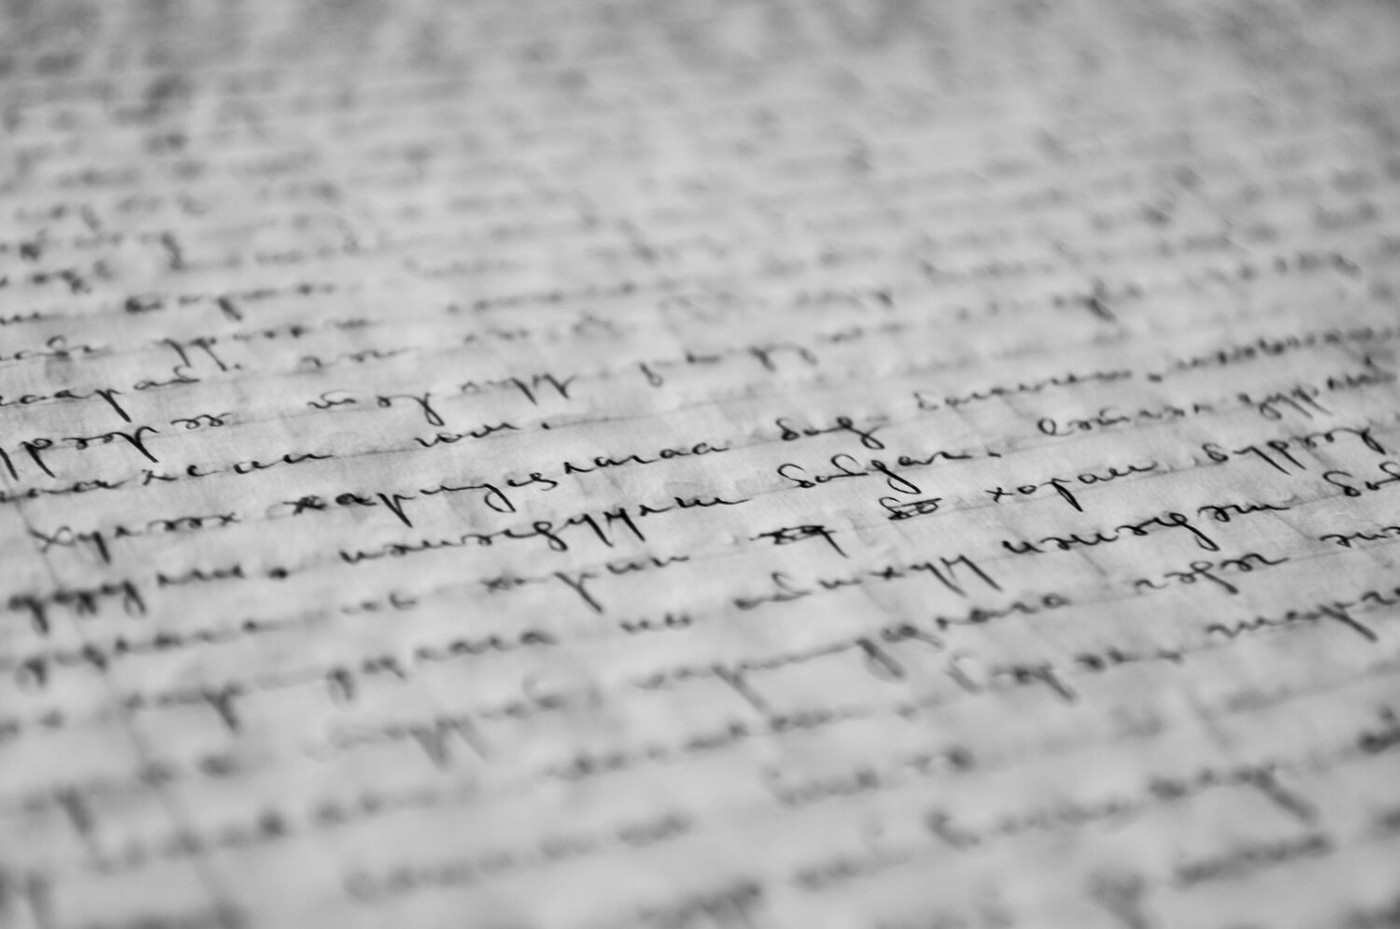 A piece of paper filled with illegible cursive writing.